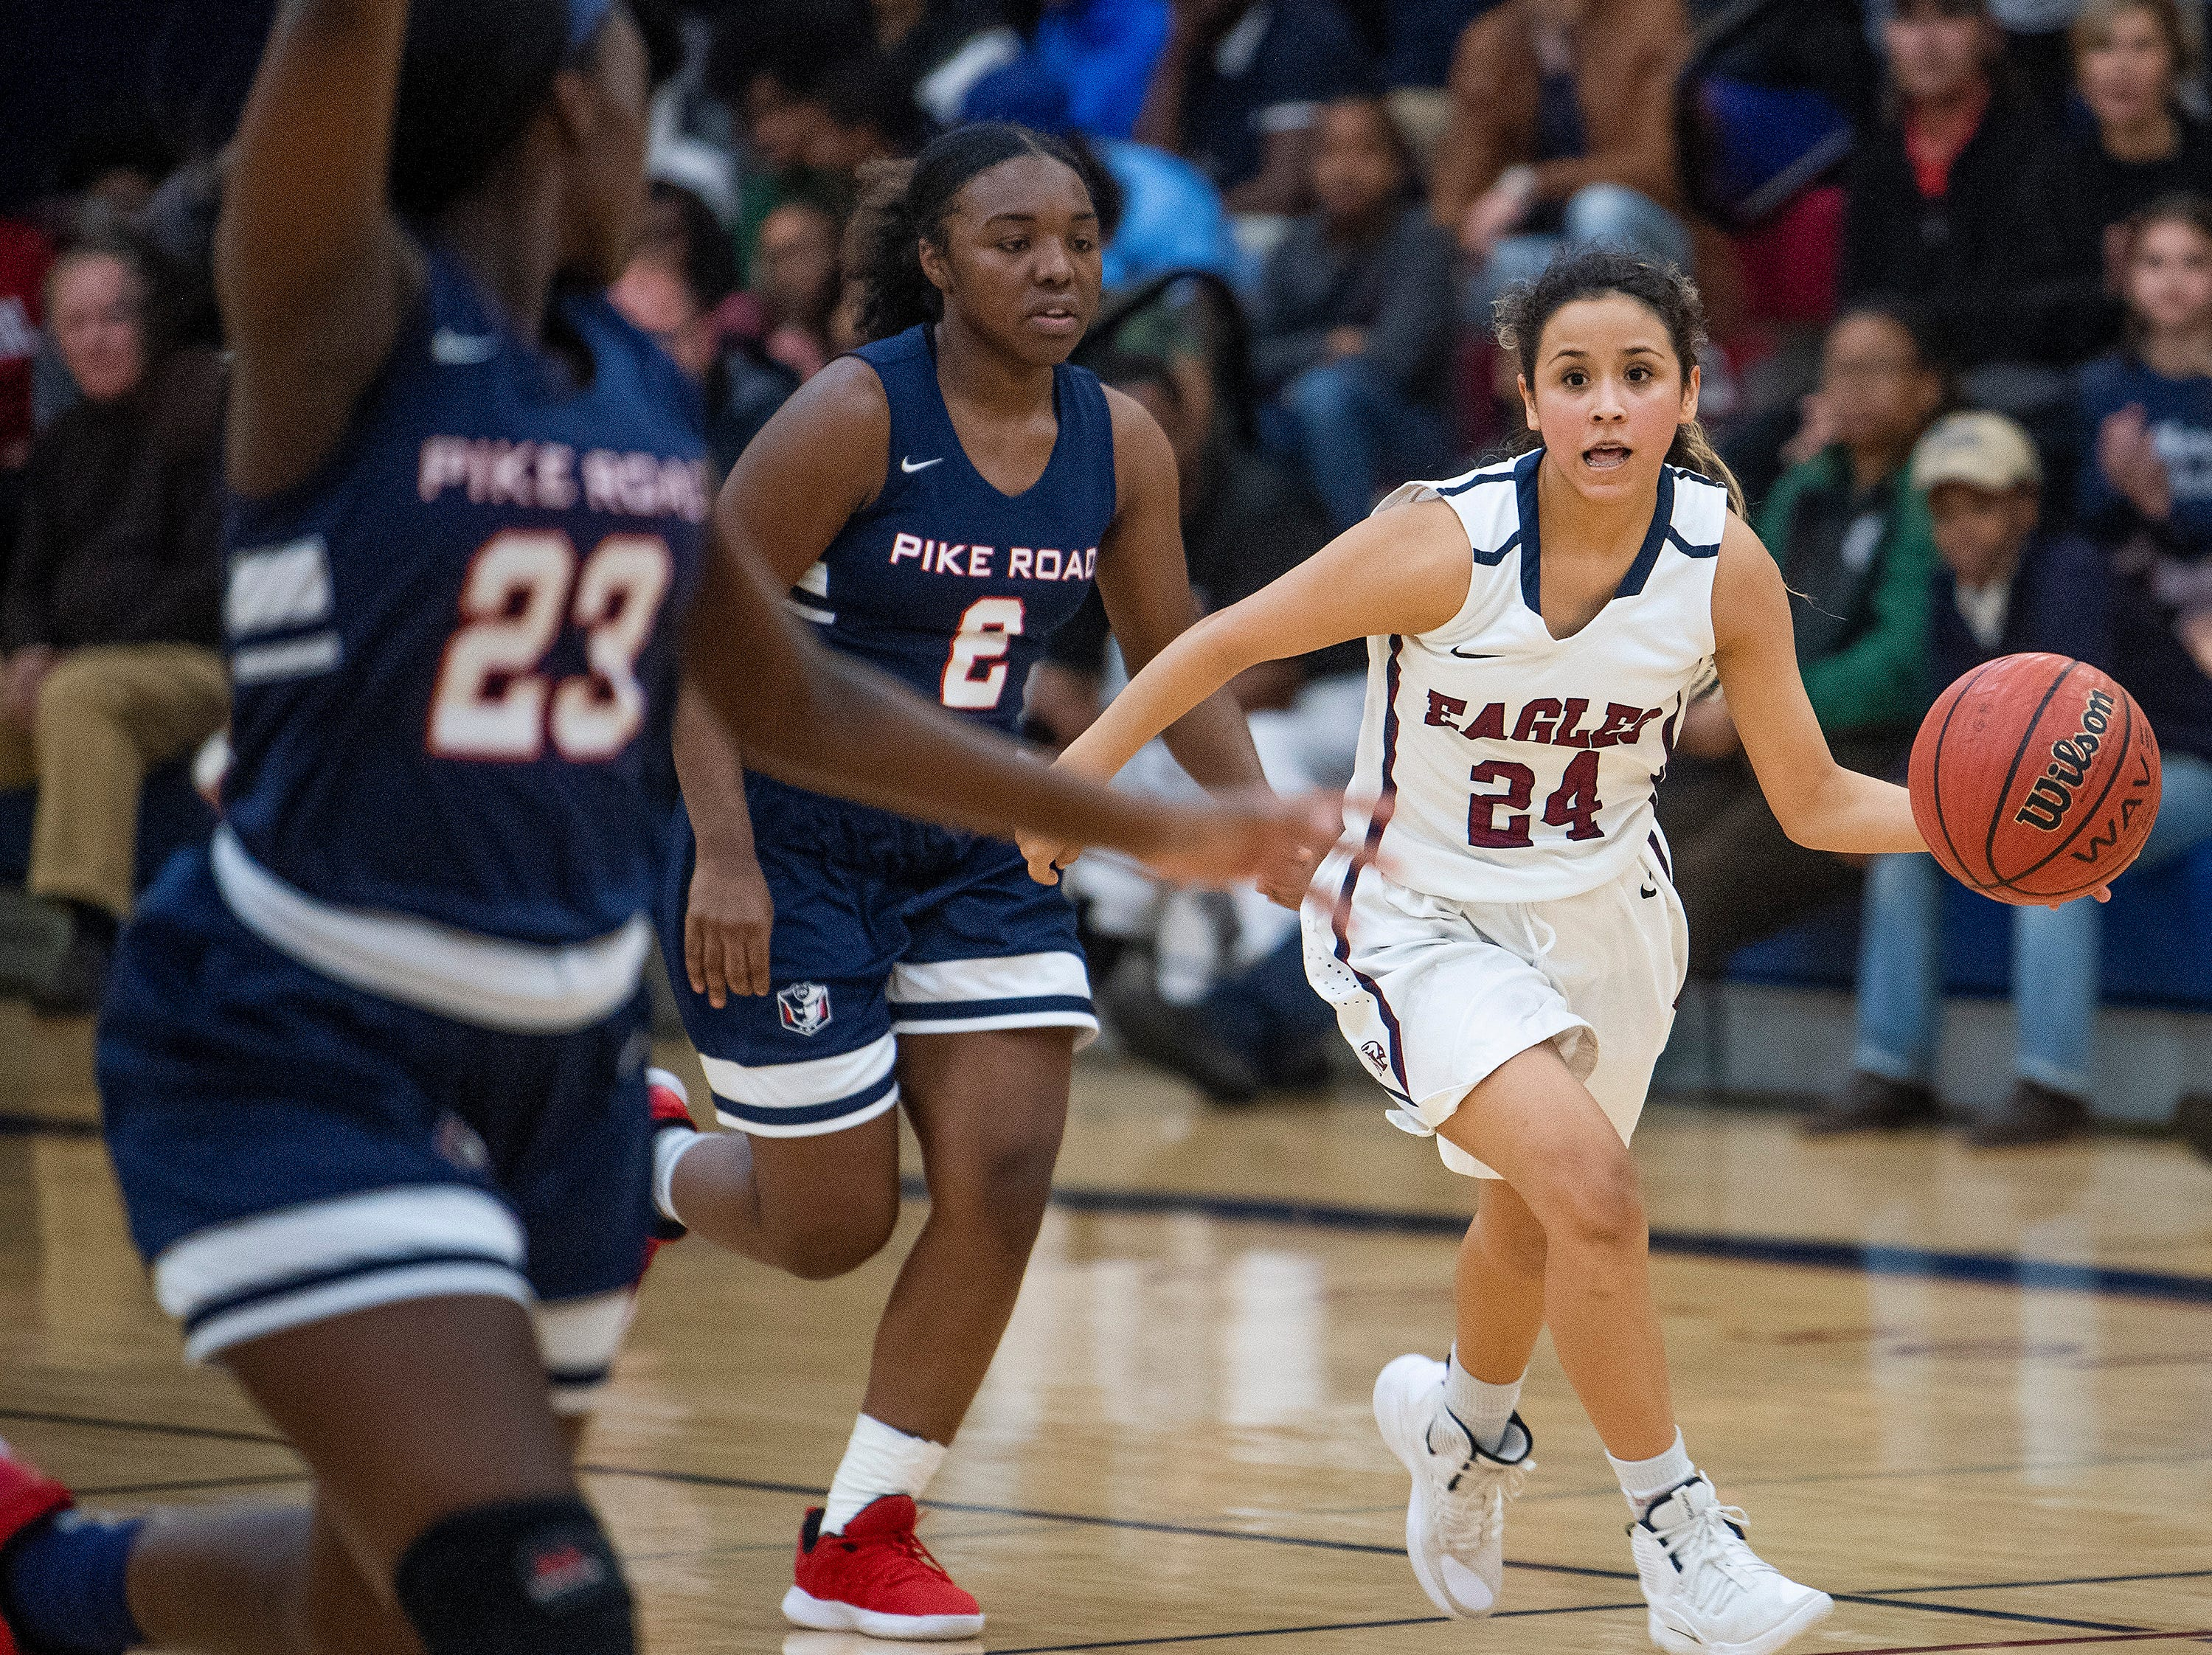 Montgomery Academy's Gabby Ramirez (24) against Pike Road on the MA campus in Montgomery, Ala., on Friday February 8, 2019.